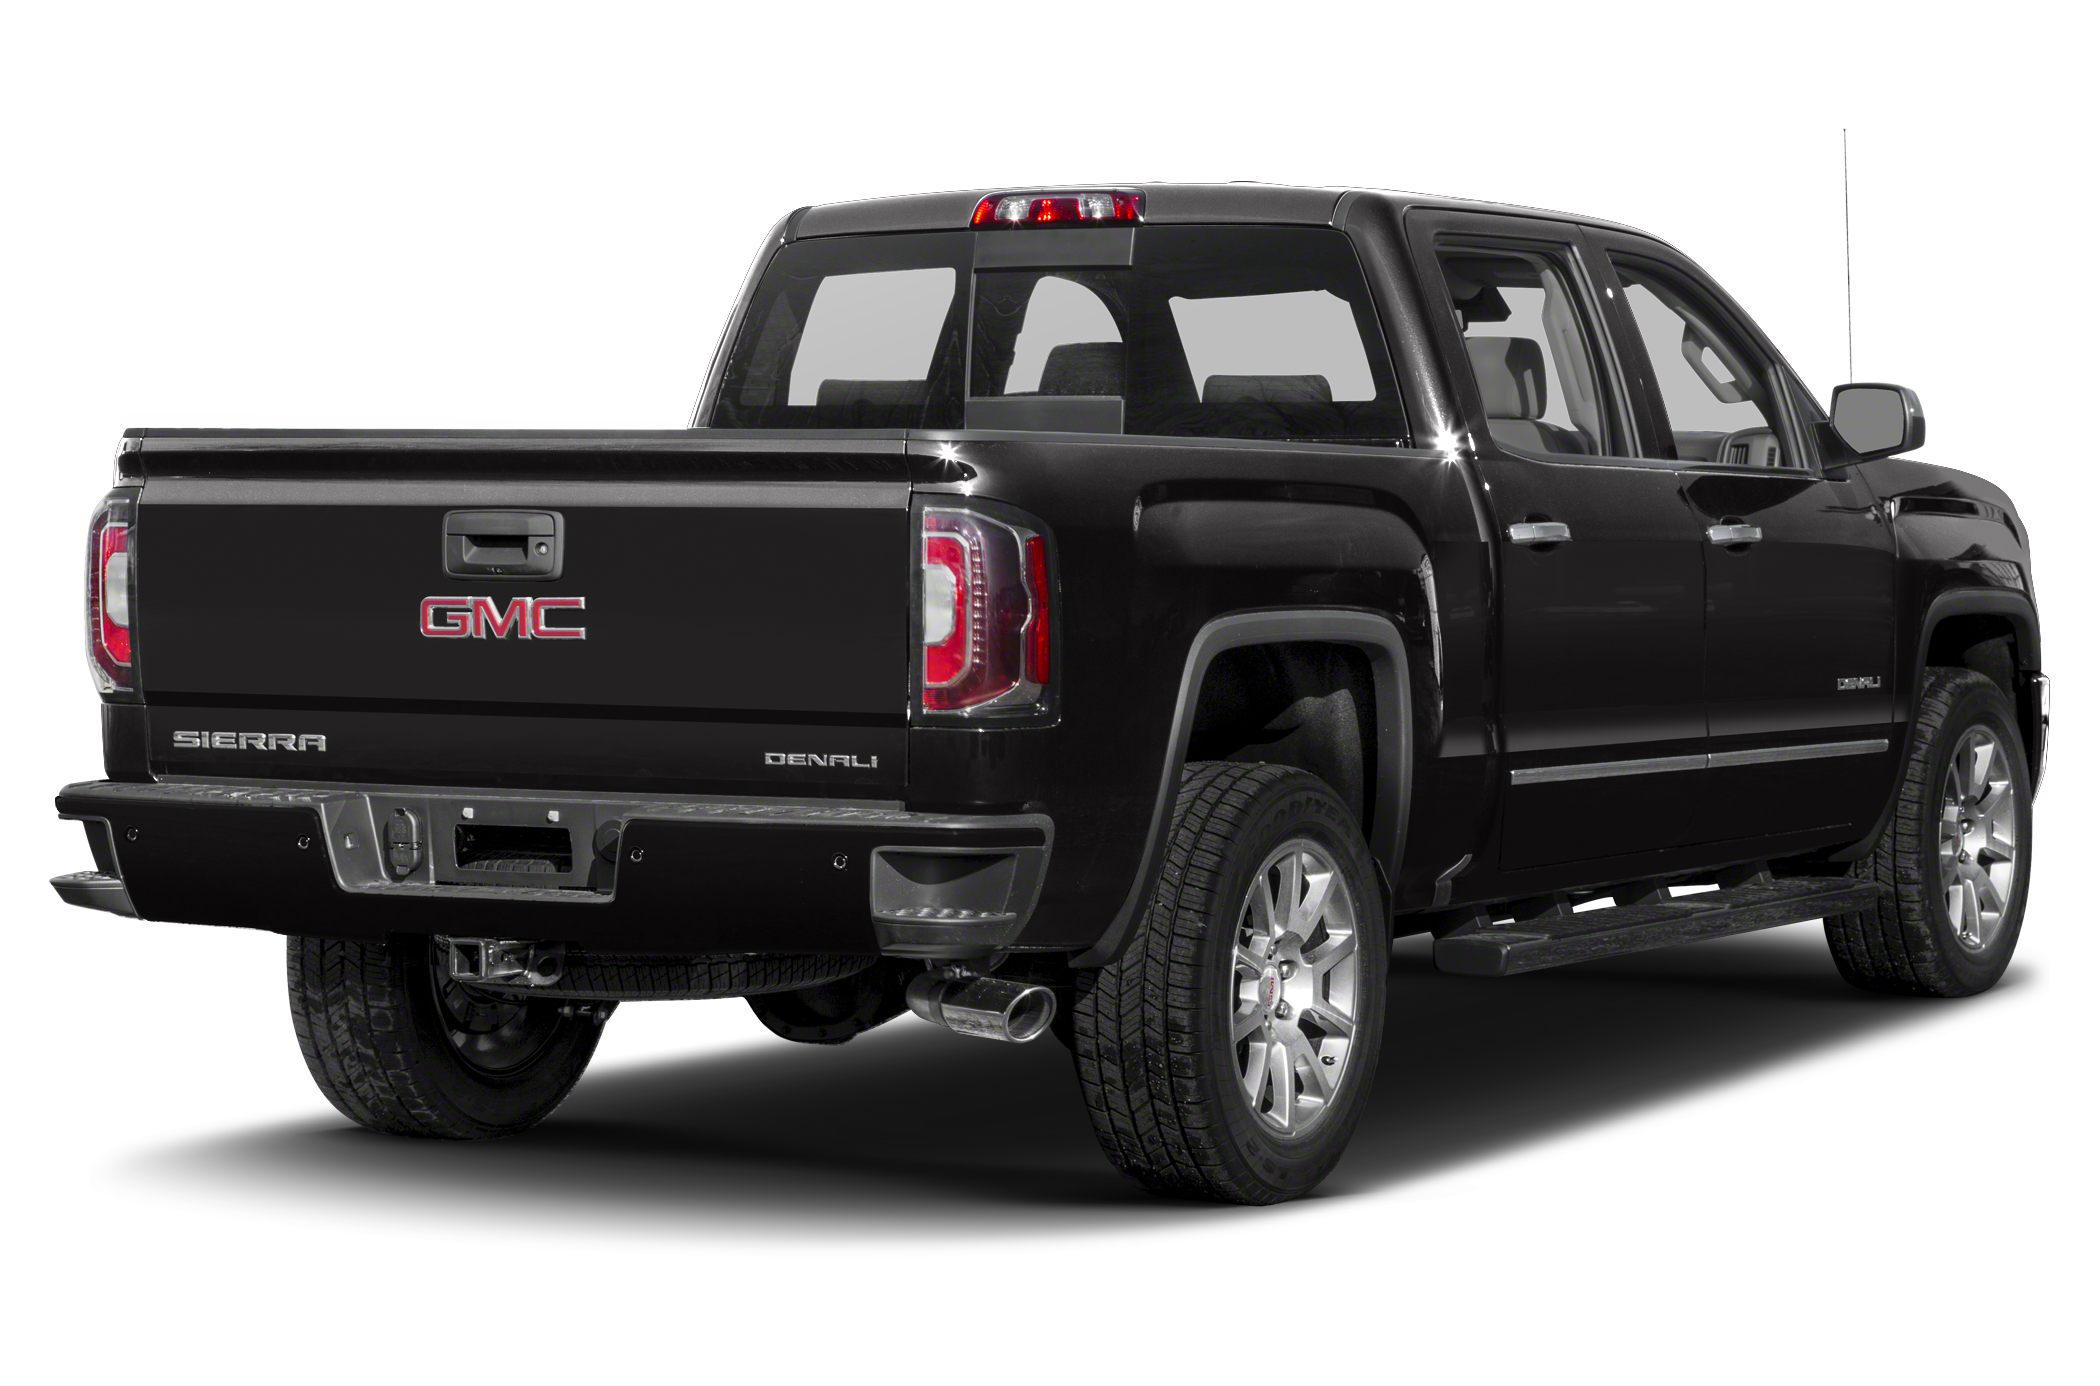 2017 gmc sierra 1500 denali cars and vehicles. Black Bedroom Furniture Sets. Home Design Ideas